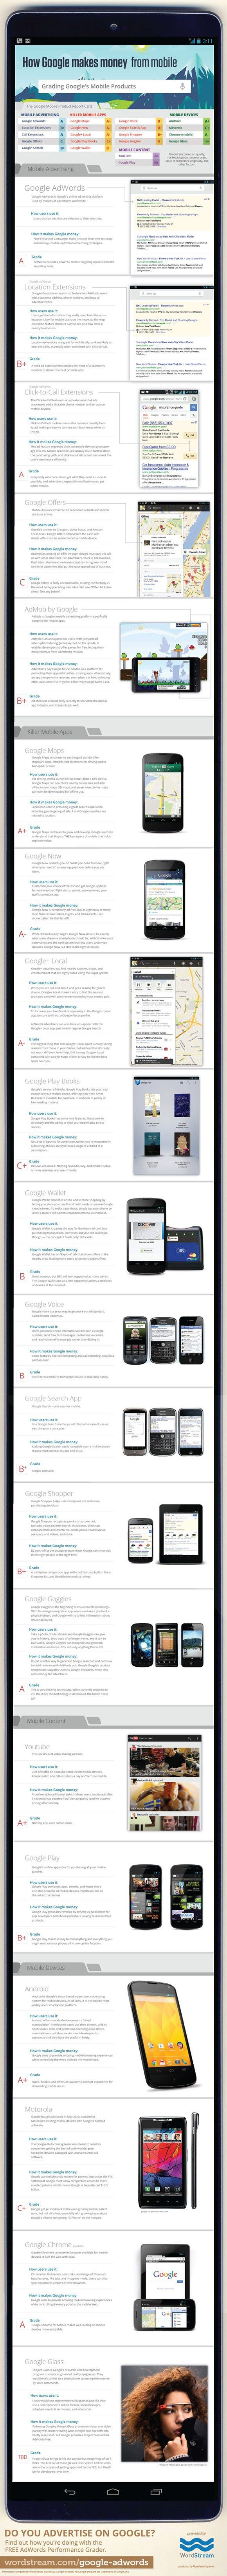 Infographic: How Google Monetizes off of Mobile